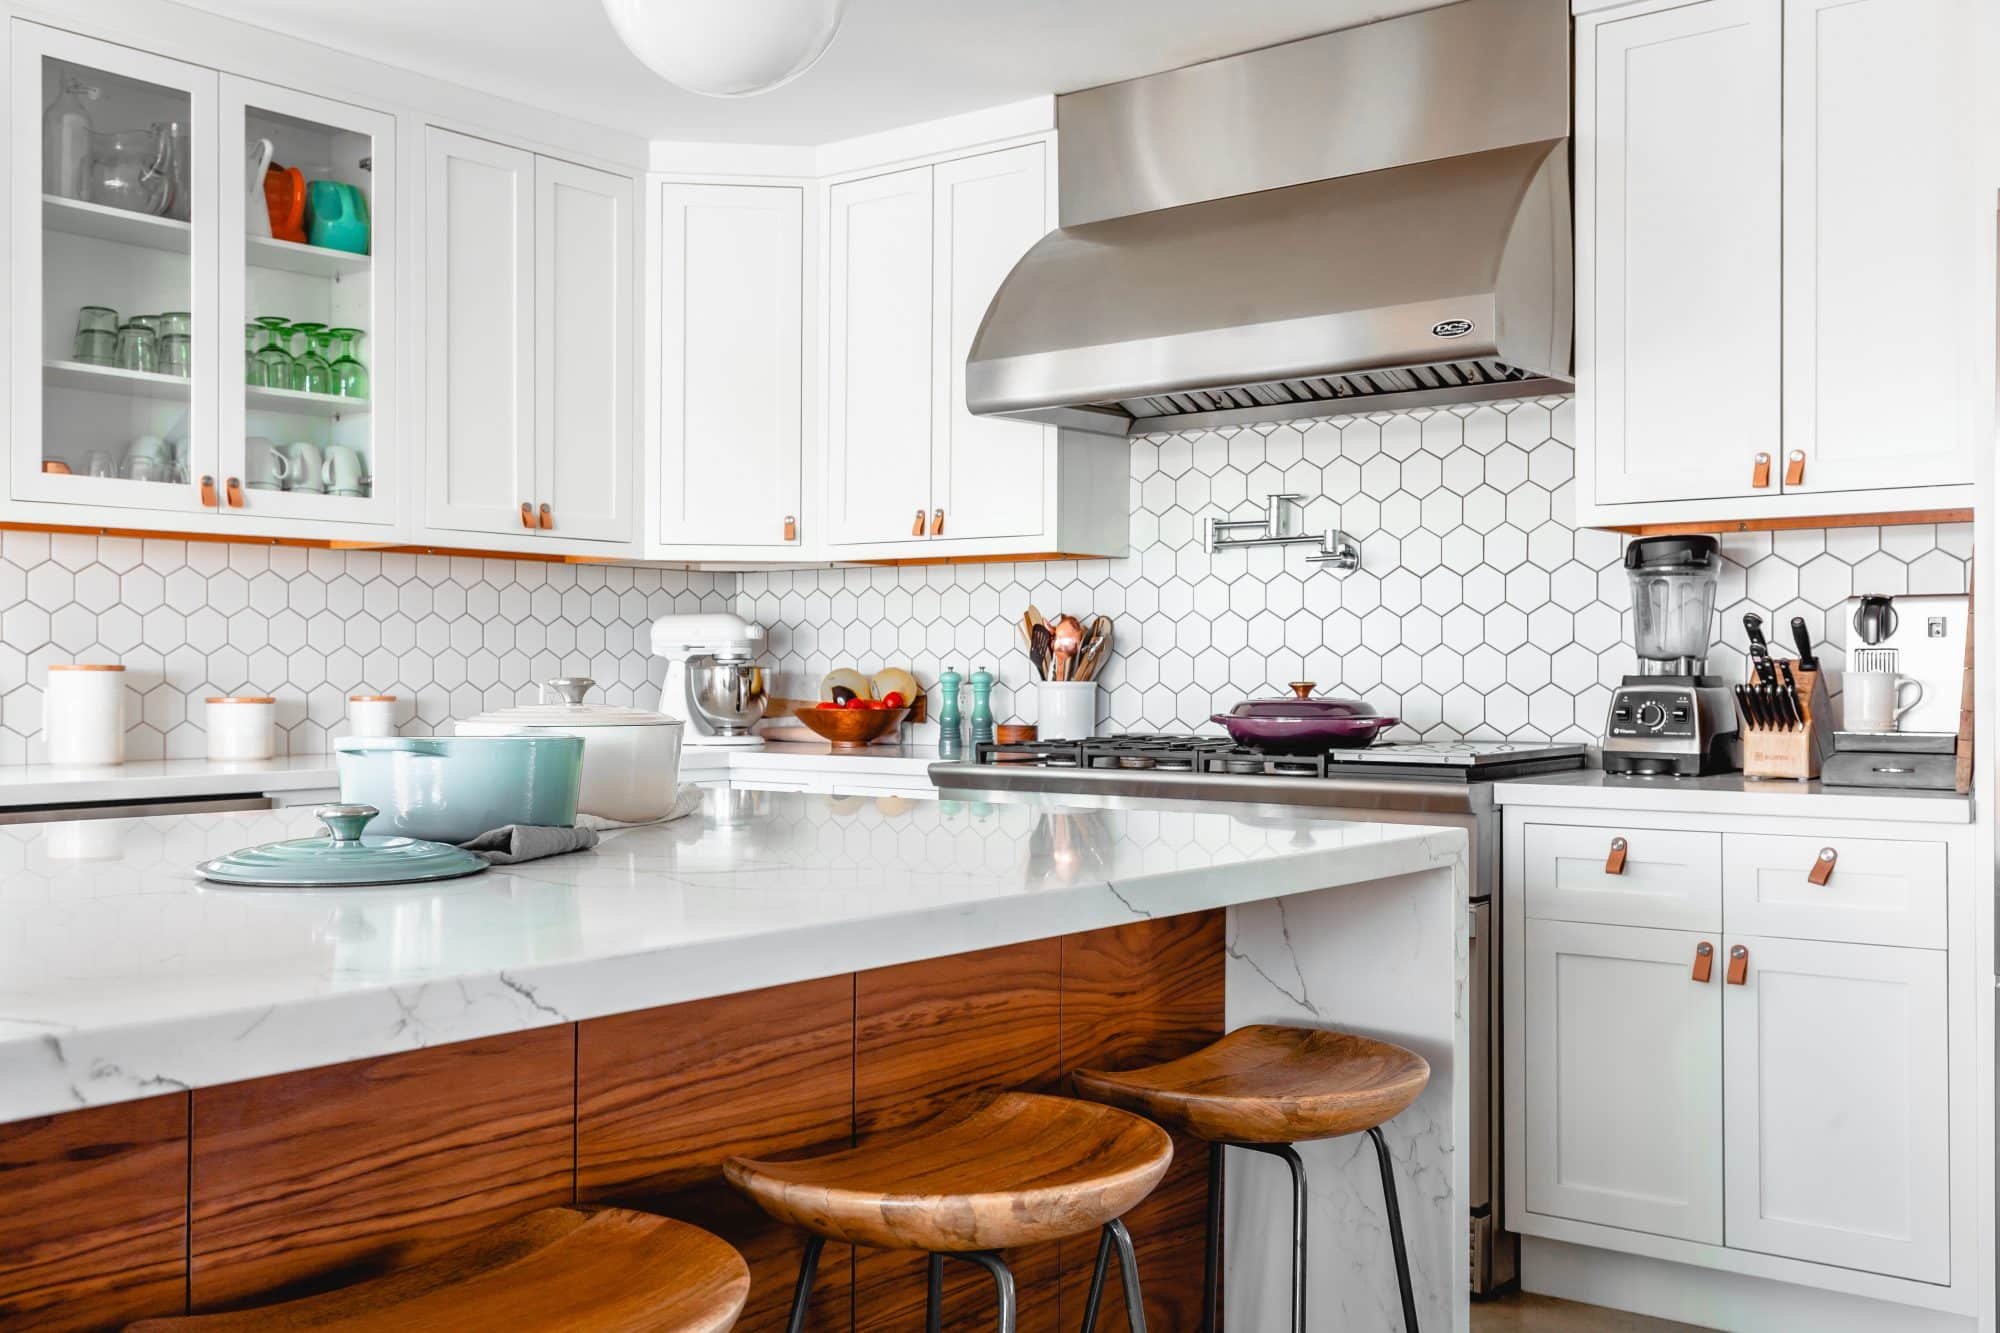 A clean kitchen from a home purchased with a VA Home Loan